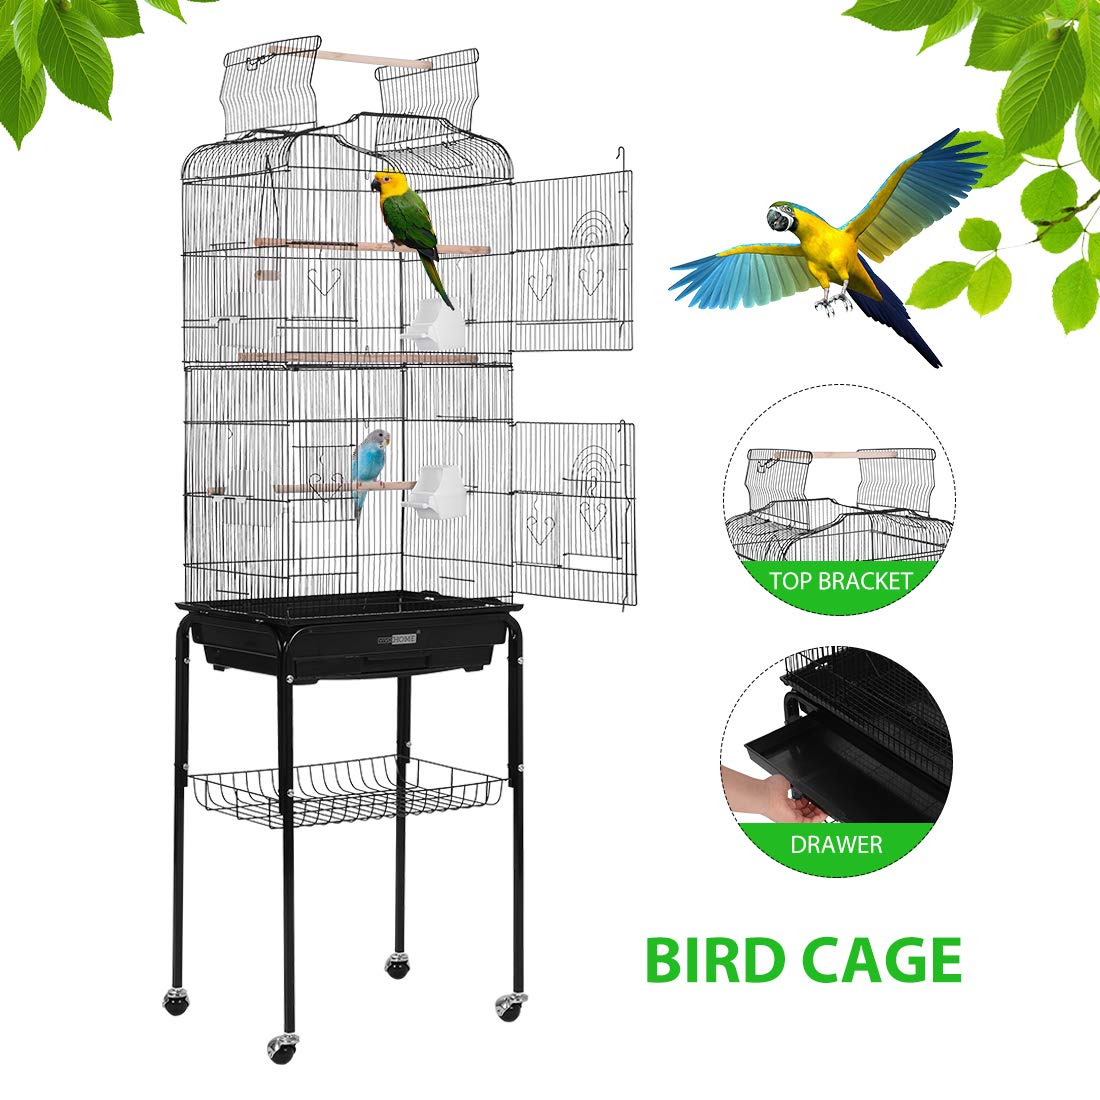 VIVOHOME 59.8 Inch Wrought Iron Bird Cage with Play Top and Rolling Stand for Parrots Conures Lovebird Cockatiel Parakeets by VIVOHOME